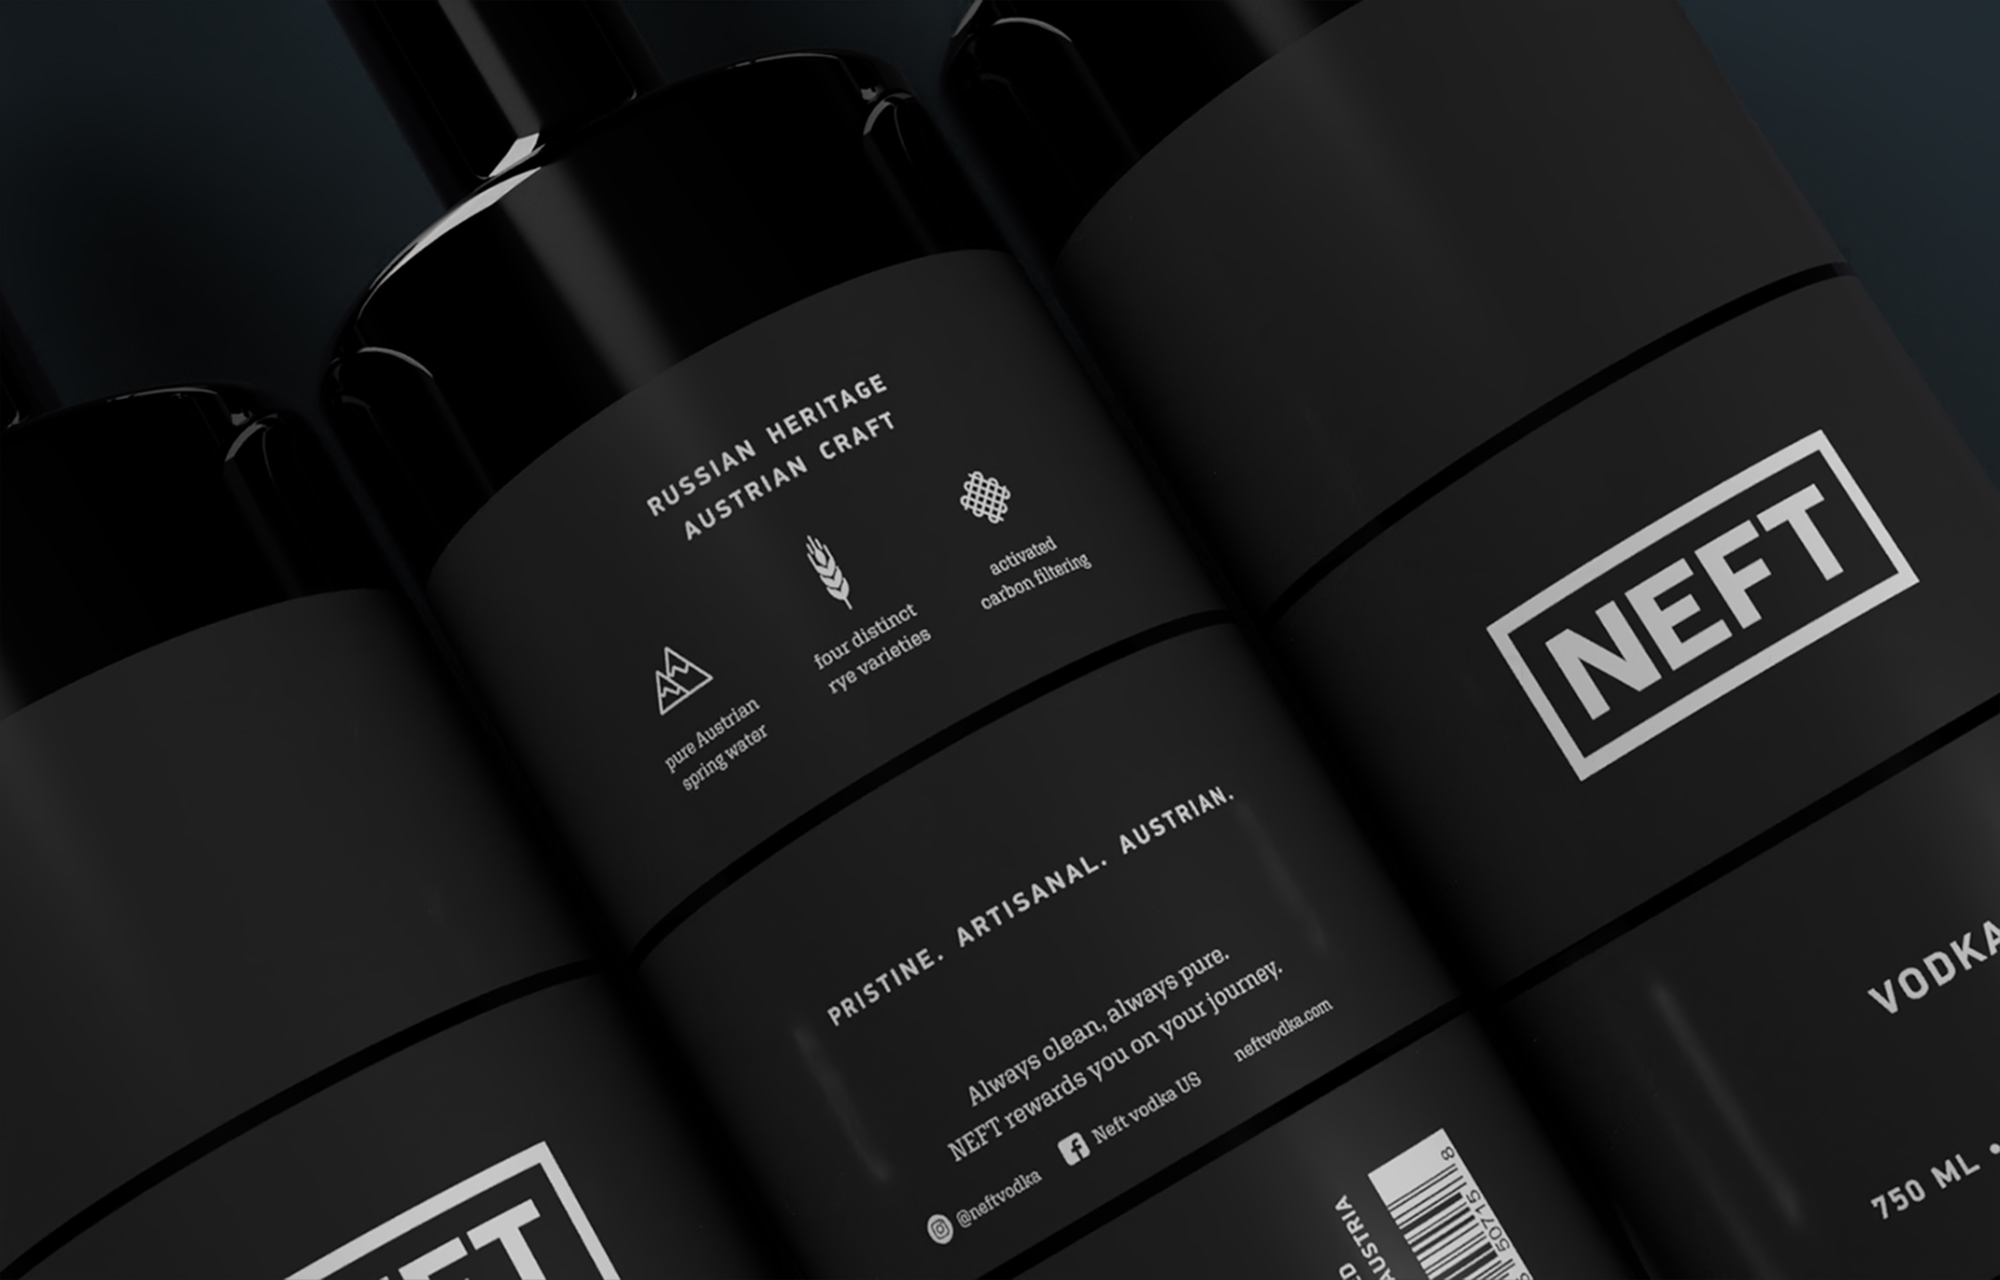 Detailed view of the typography design on the Vodka NEFT bottles